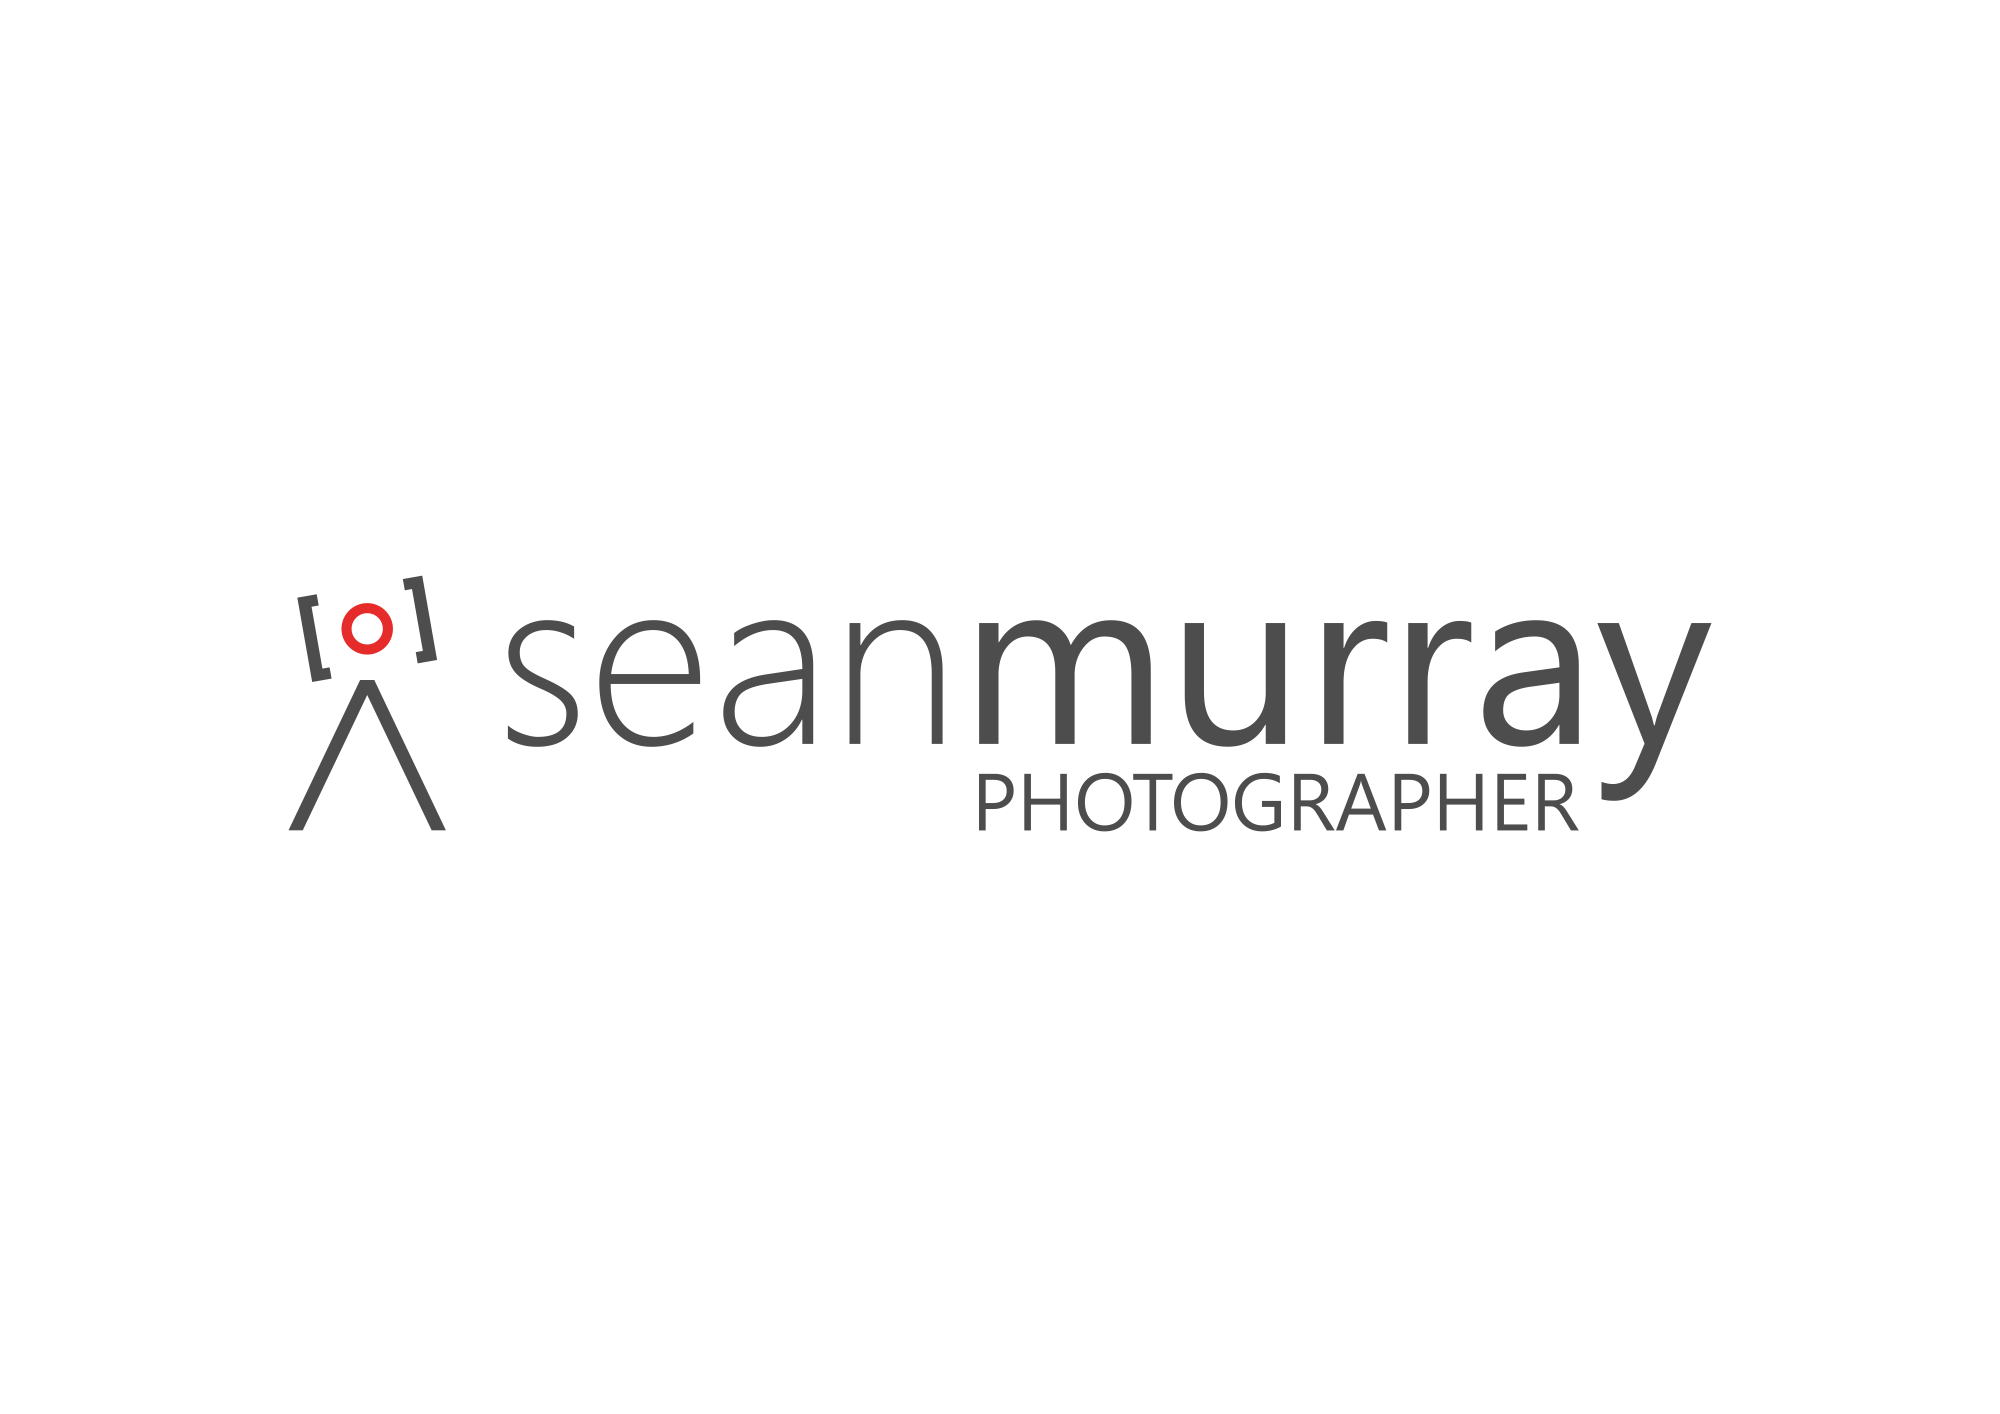 Simple logo for a freelance commercial photographer